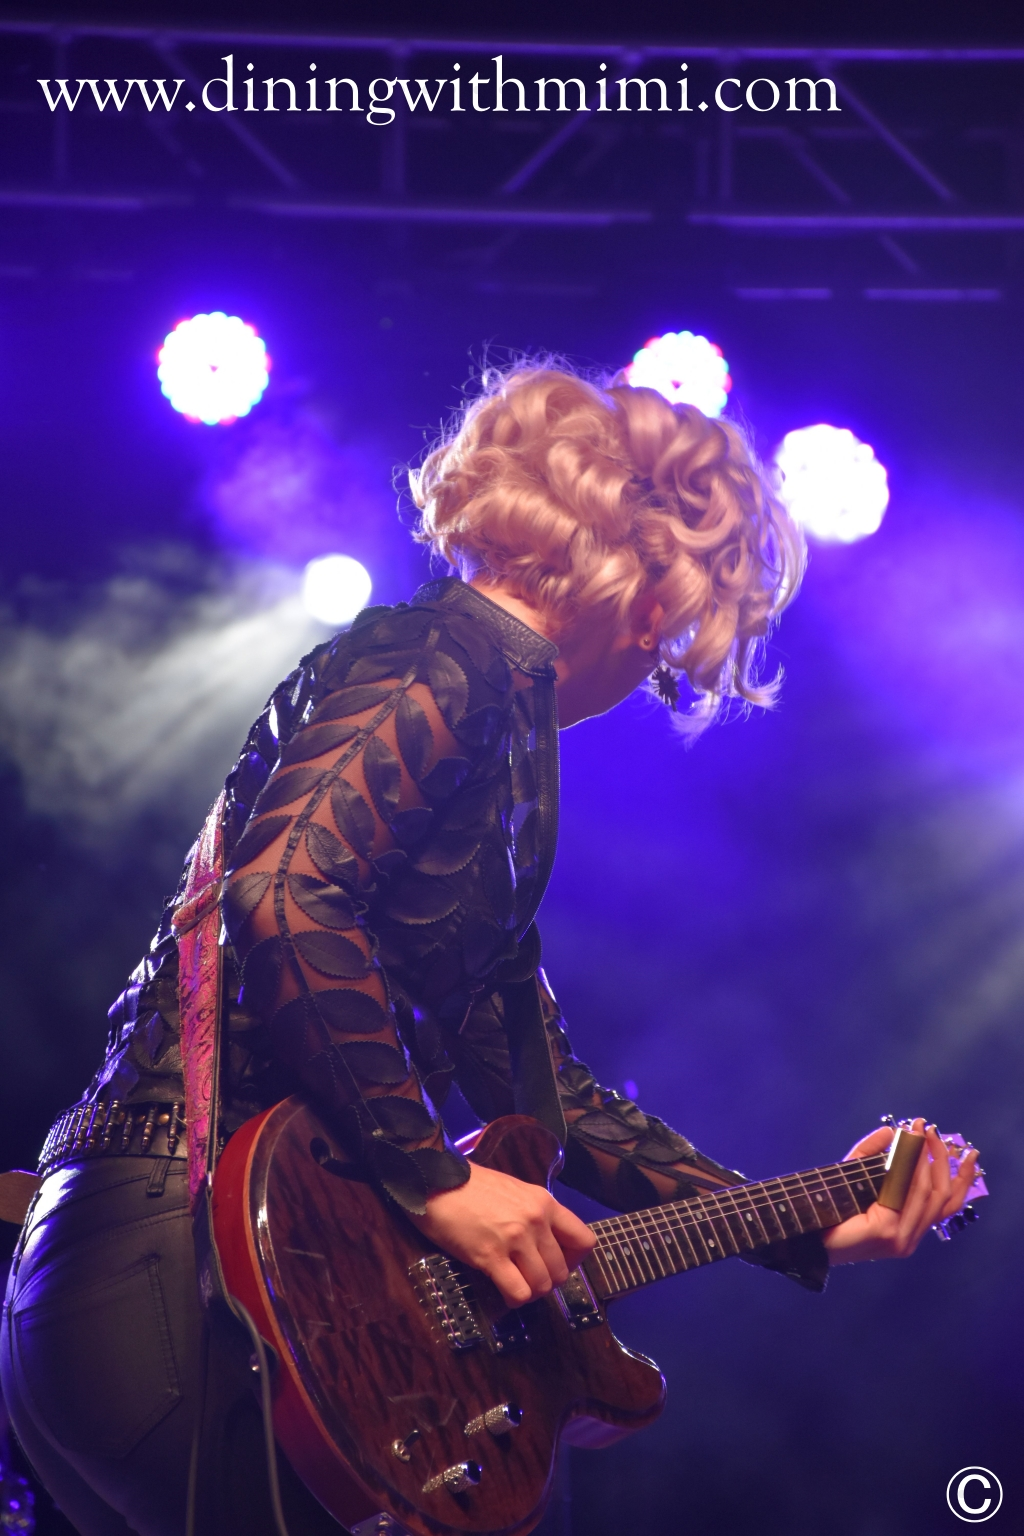 Samantha Fish Brains, Beauty and Slaying a Guitar as Samantha Fish www.diningwithmimi.com